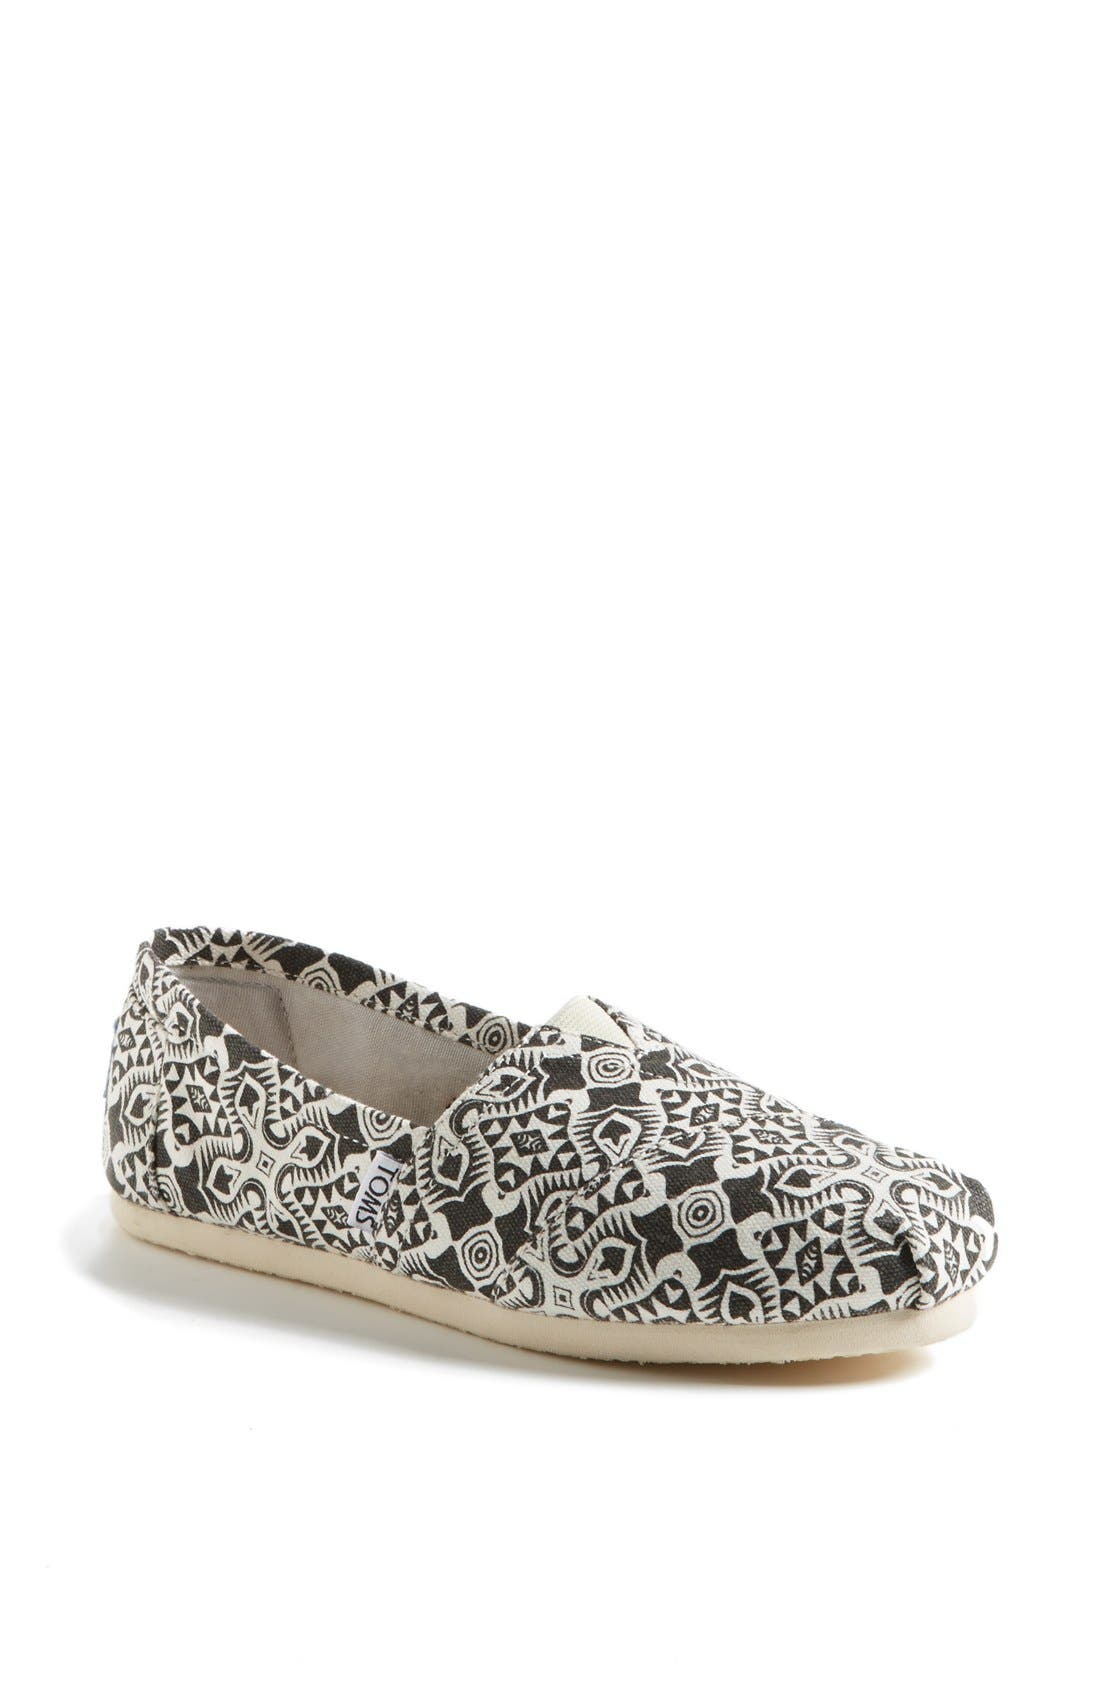 Alternate Image 1 Selected - TOMS 'Classic - Kaleidoscope' Slip-On (Women)